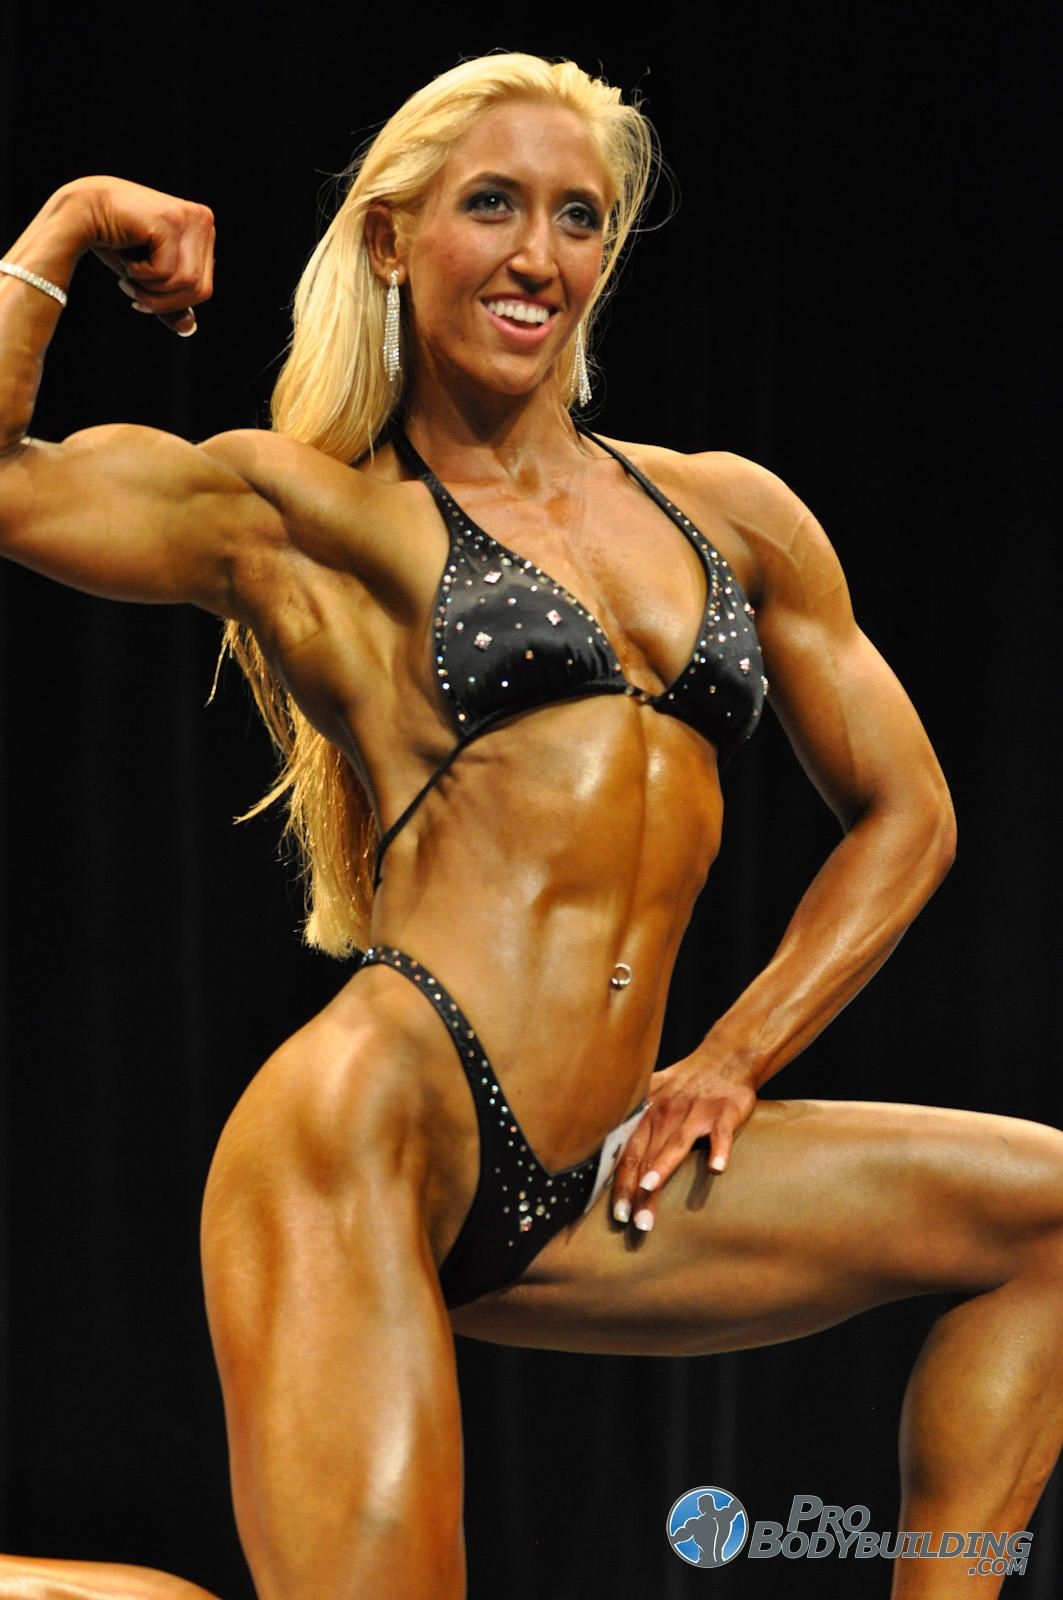 Woman female bodybuilder